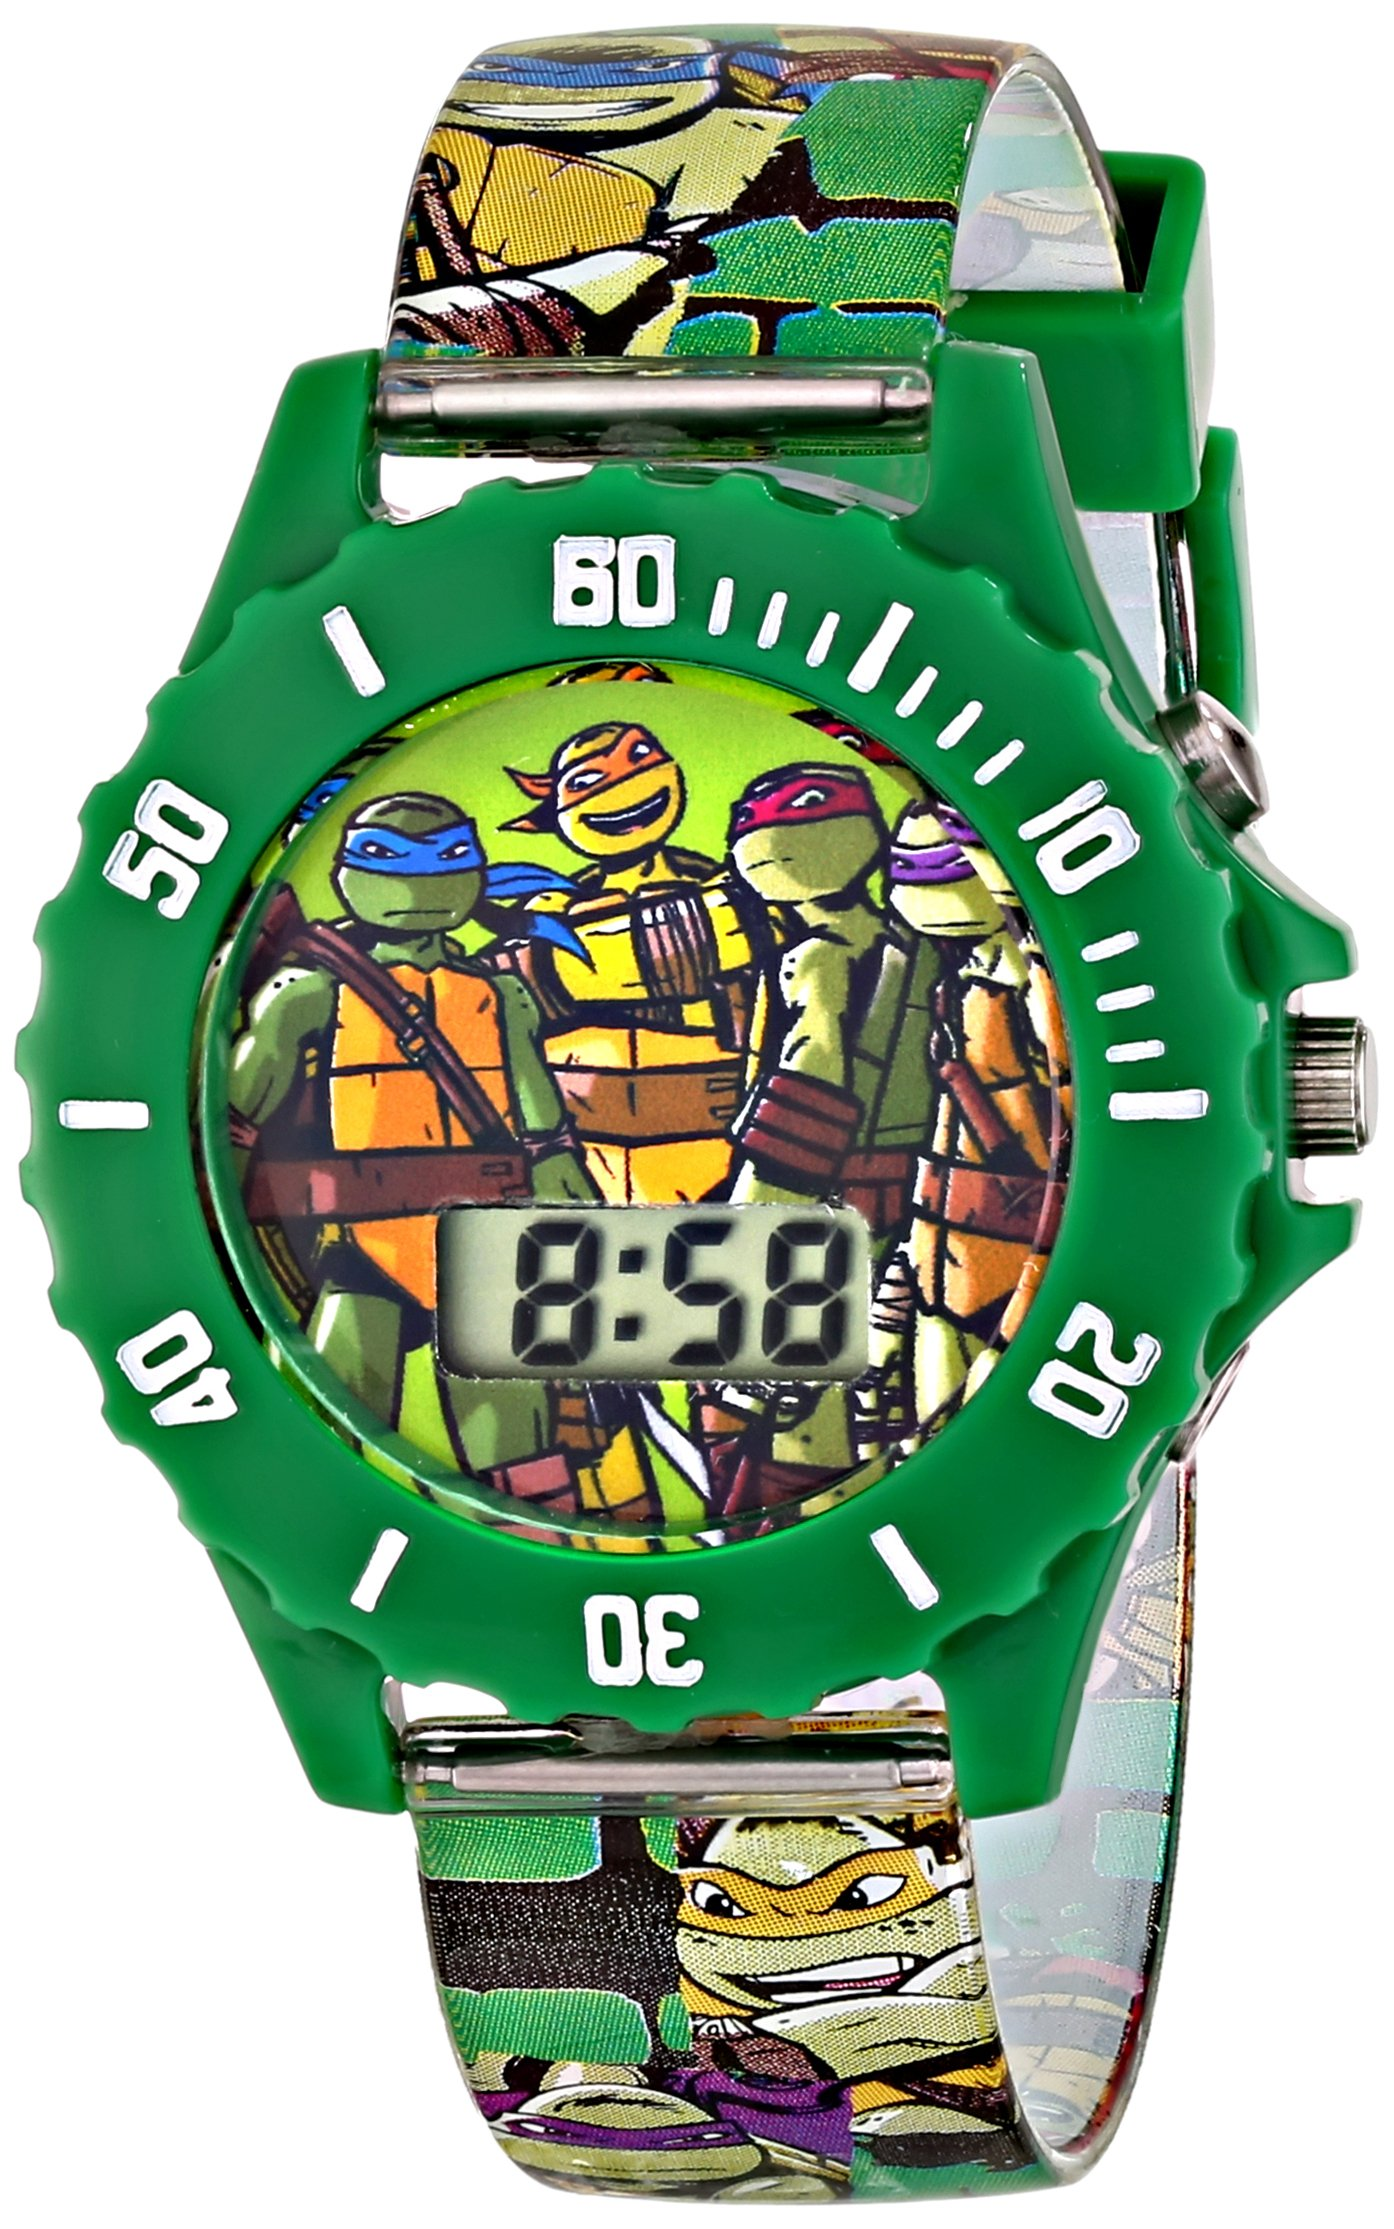 Ninja Turtles Kids' Digital Watch with Green Bezel, Speaker Plays TMNT Theme Song, Green Strap - Kids Digital Watch with Teenage Mutant Ninja Turtles on the Dial, Safe for Children - Model: TMN4085